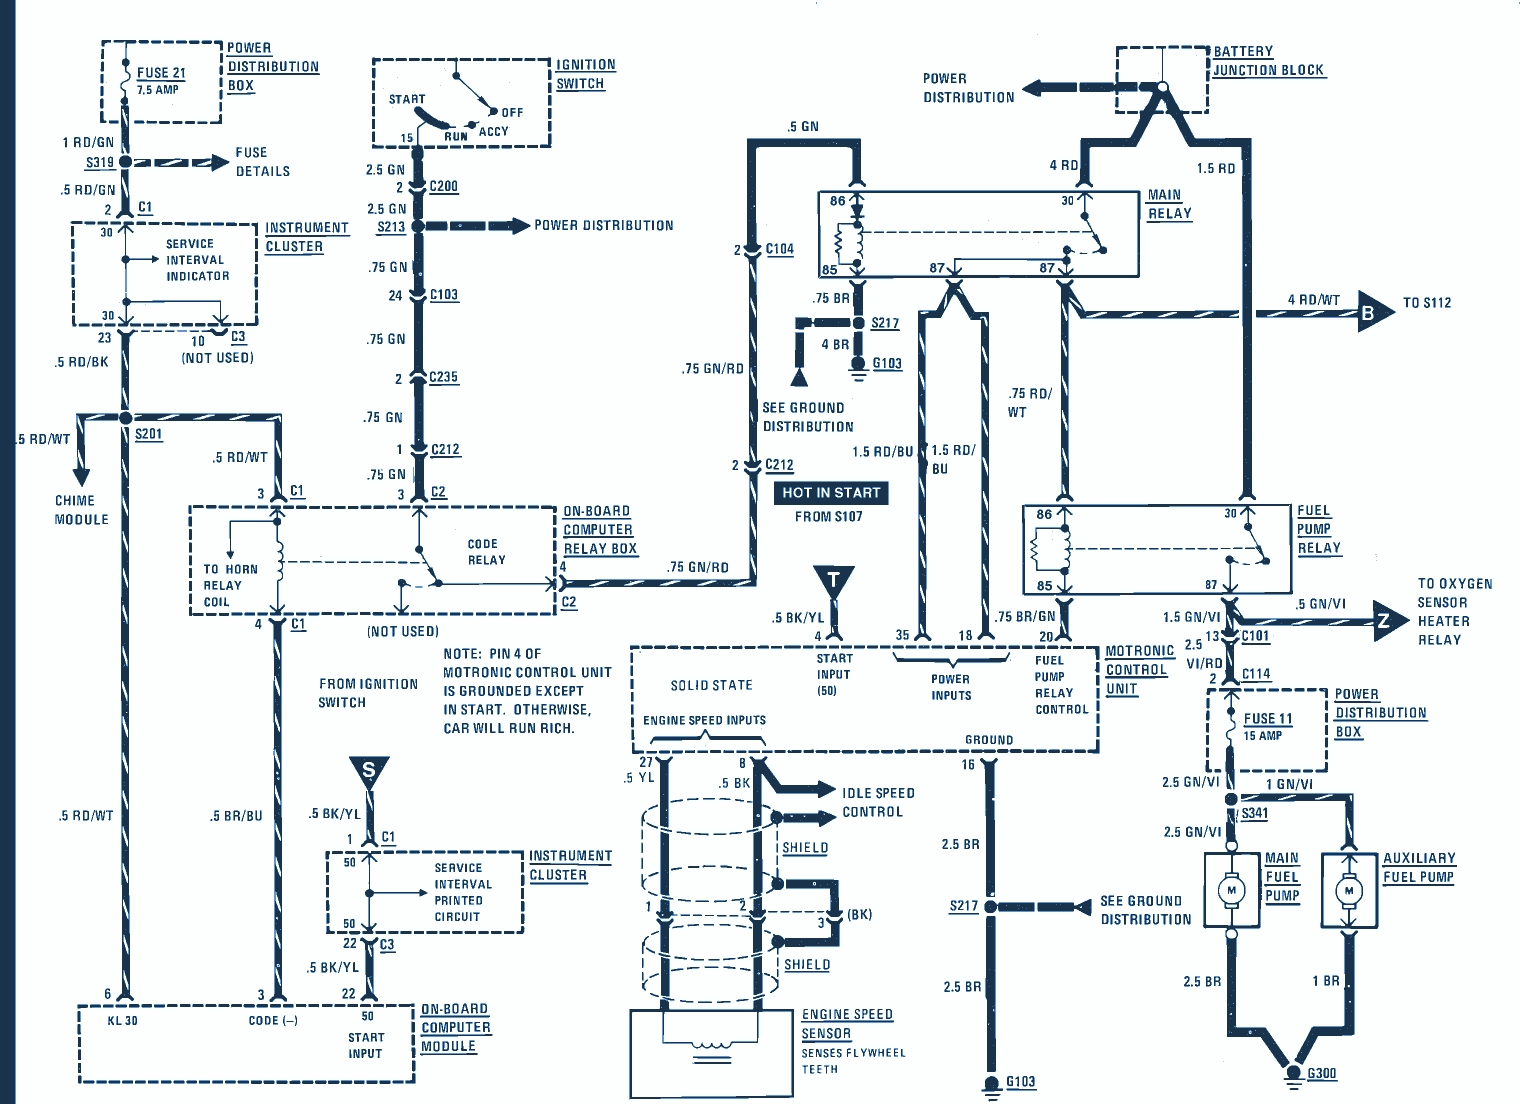 Wiring Diagram S1000rr Electrical Diagrams For Bmw S1000r R1100rt Abs K1200lt Guitar 2000